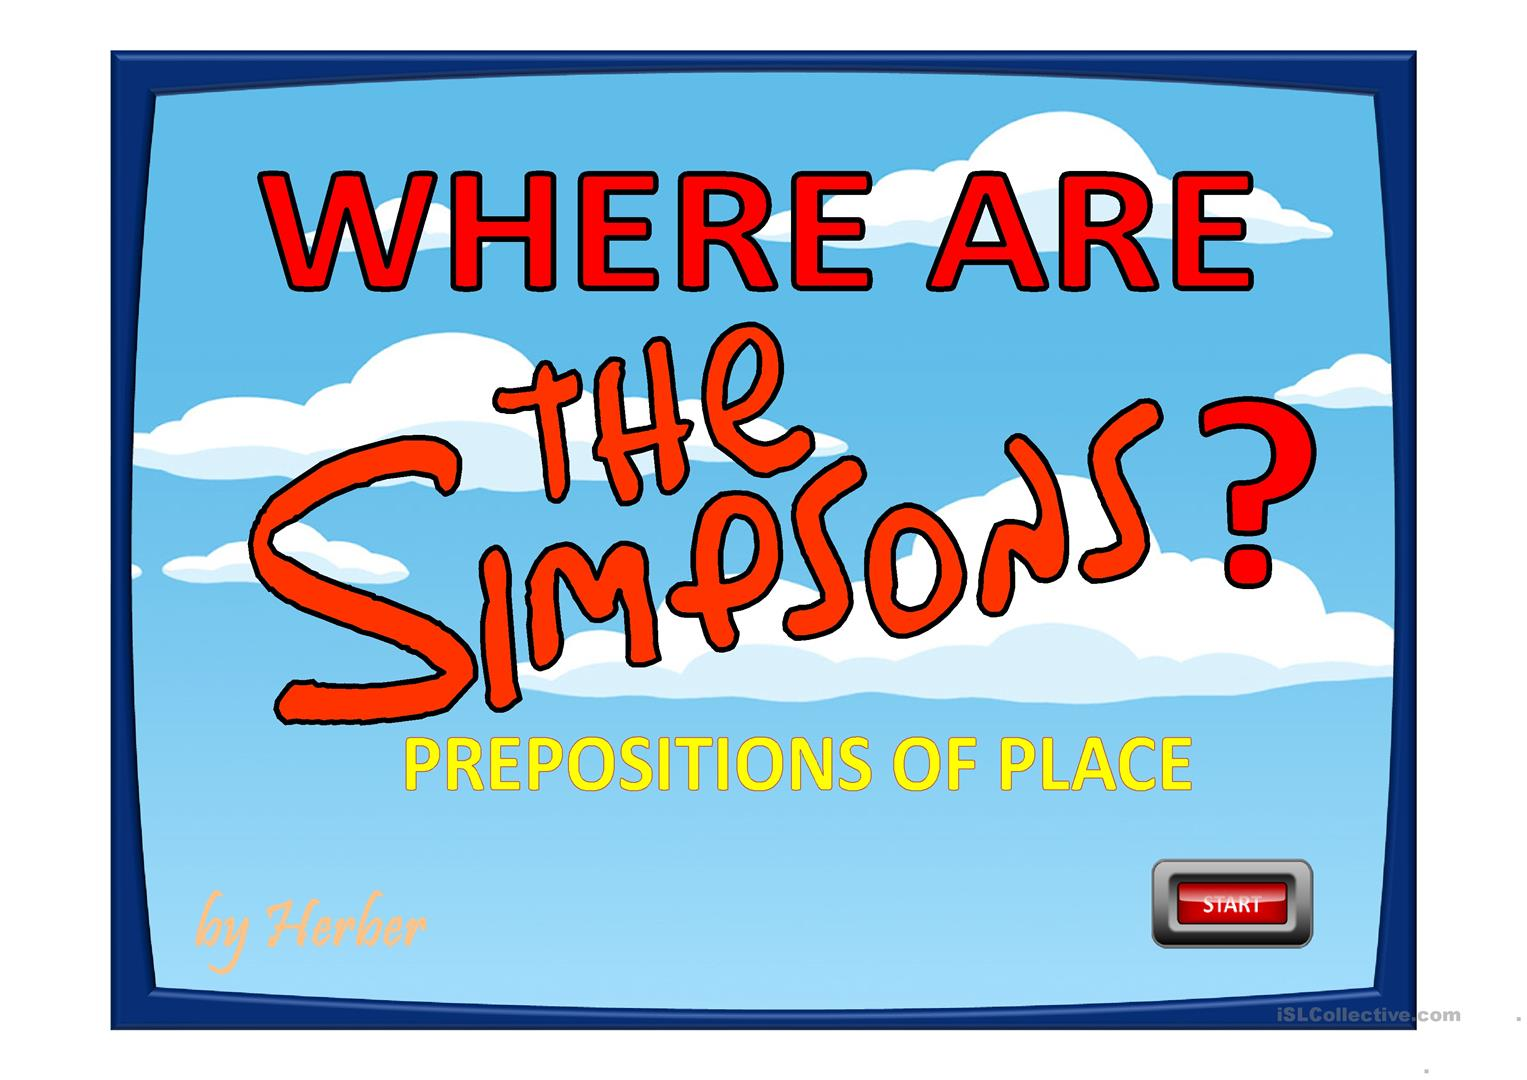 WHERE ARE THE SIMPSONS? worksheet - Free ESL projectable worksheets ...